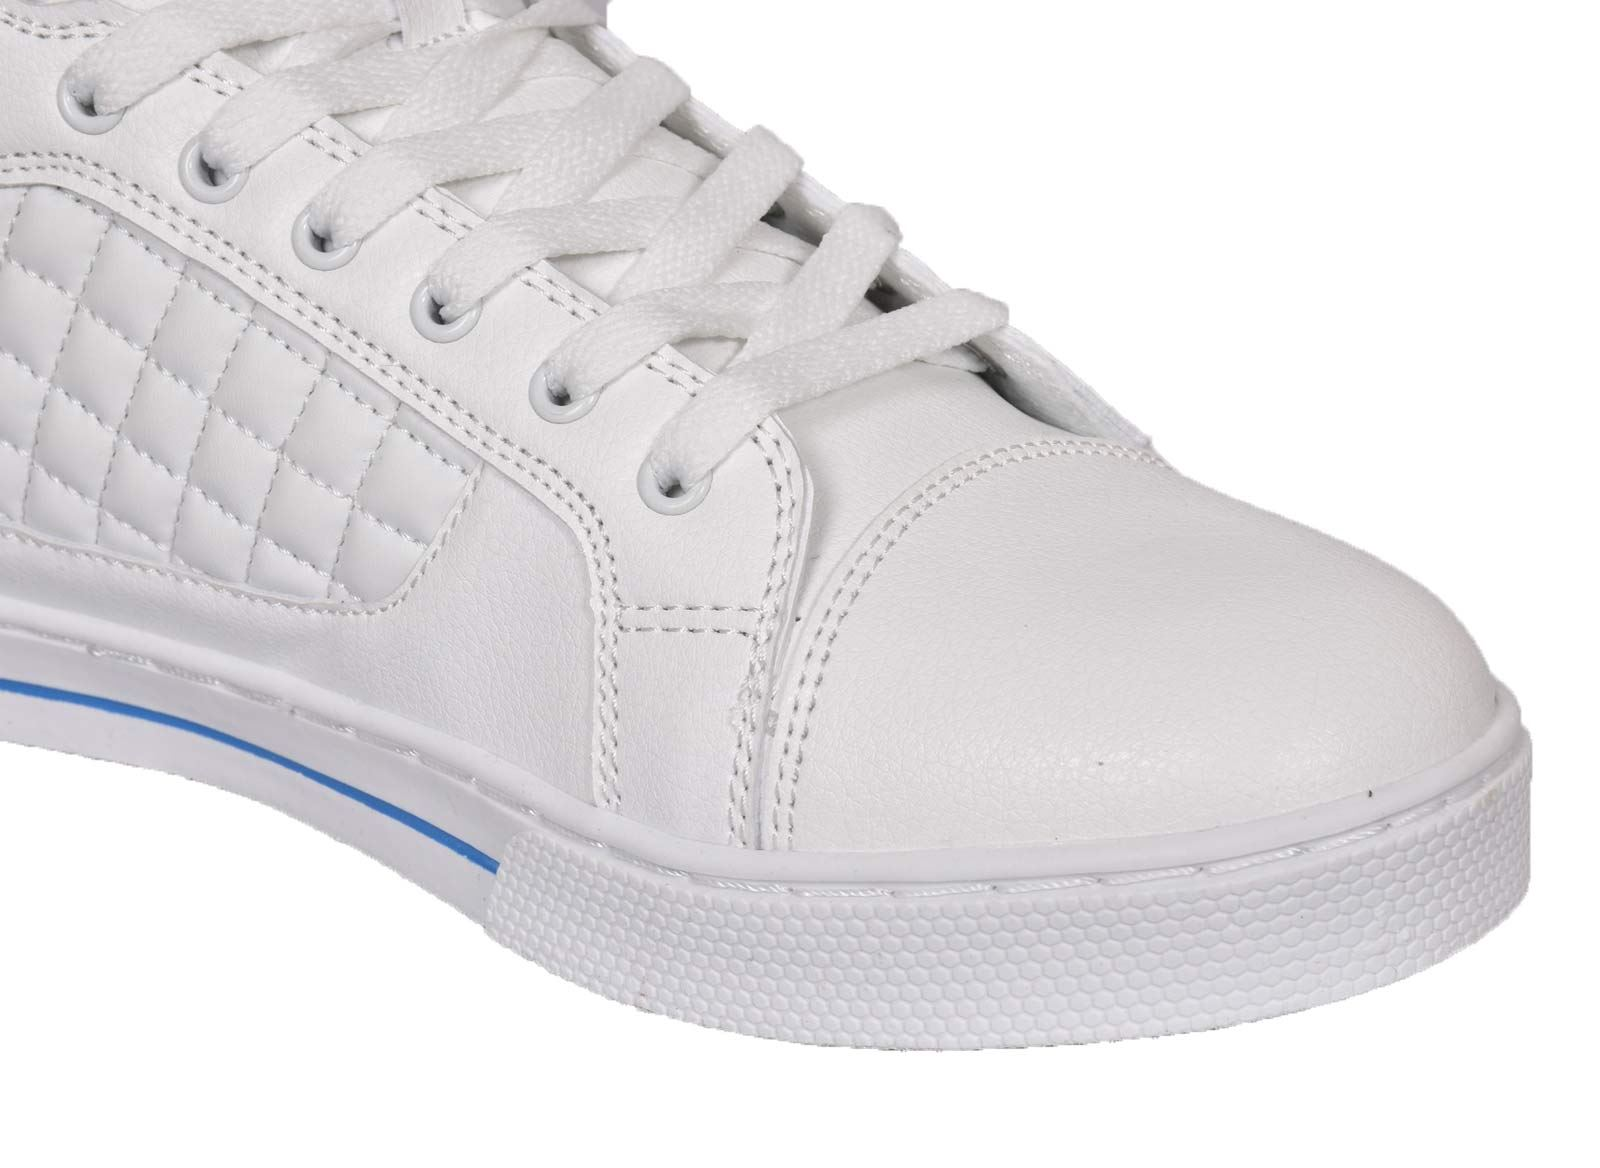 Mens-Trainers-Lace-up-Crosshatch-High-Tops-Ankle-Padded-Shoes-New-UK-Sizes-7-12 thumbnail 25